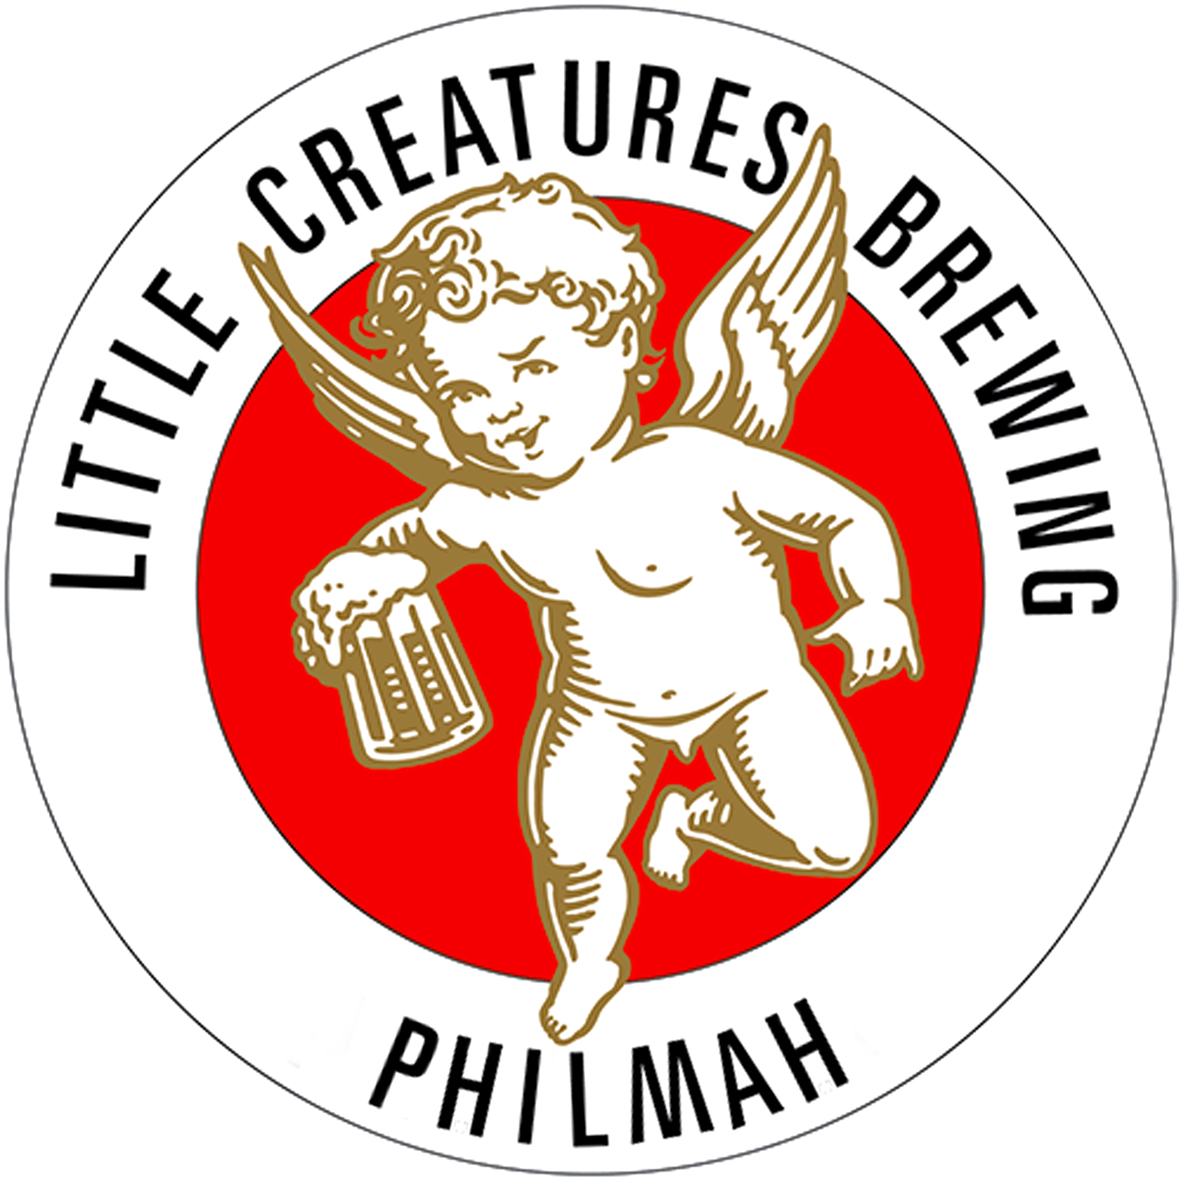 LittleCreatures_Philmah.jpg